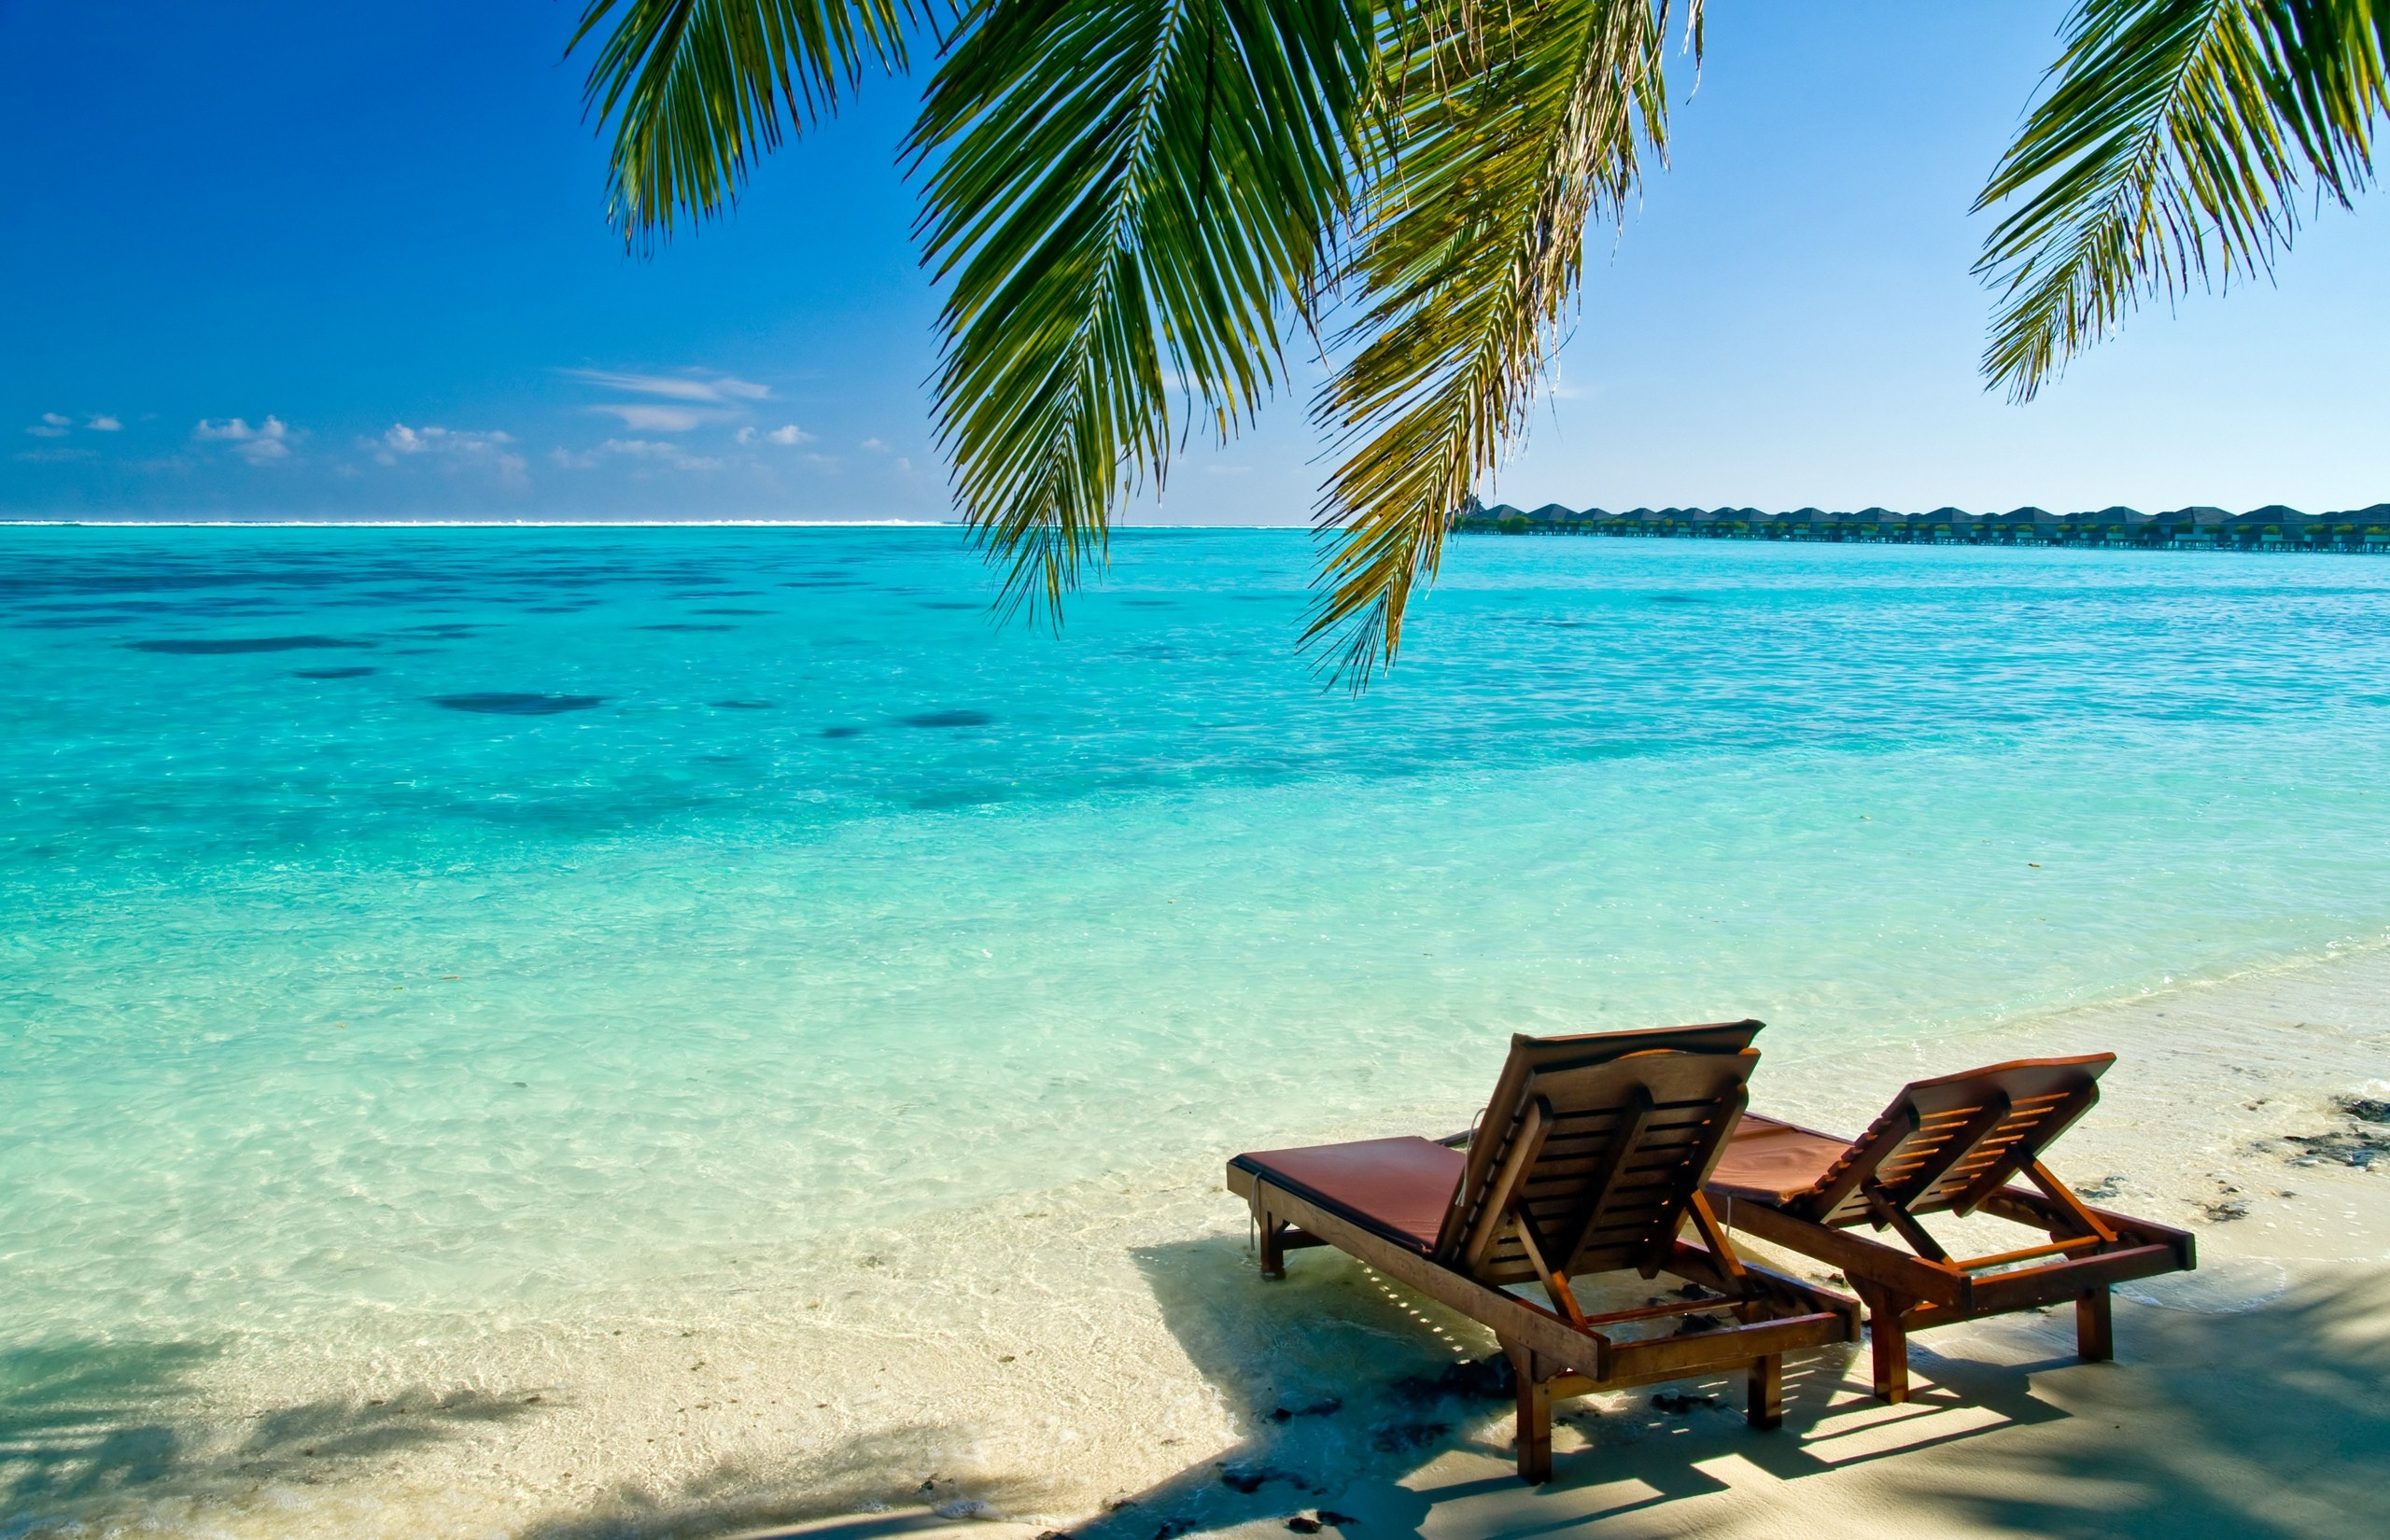 Relaxing In Maldives Beach Wallpaper 6130 Wallpaper WallpapersTube 2560x1650